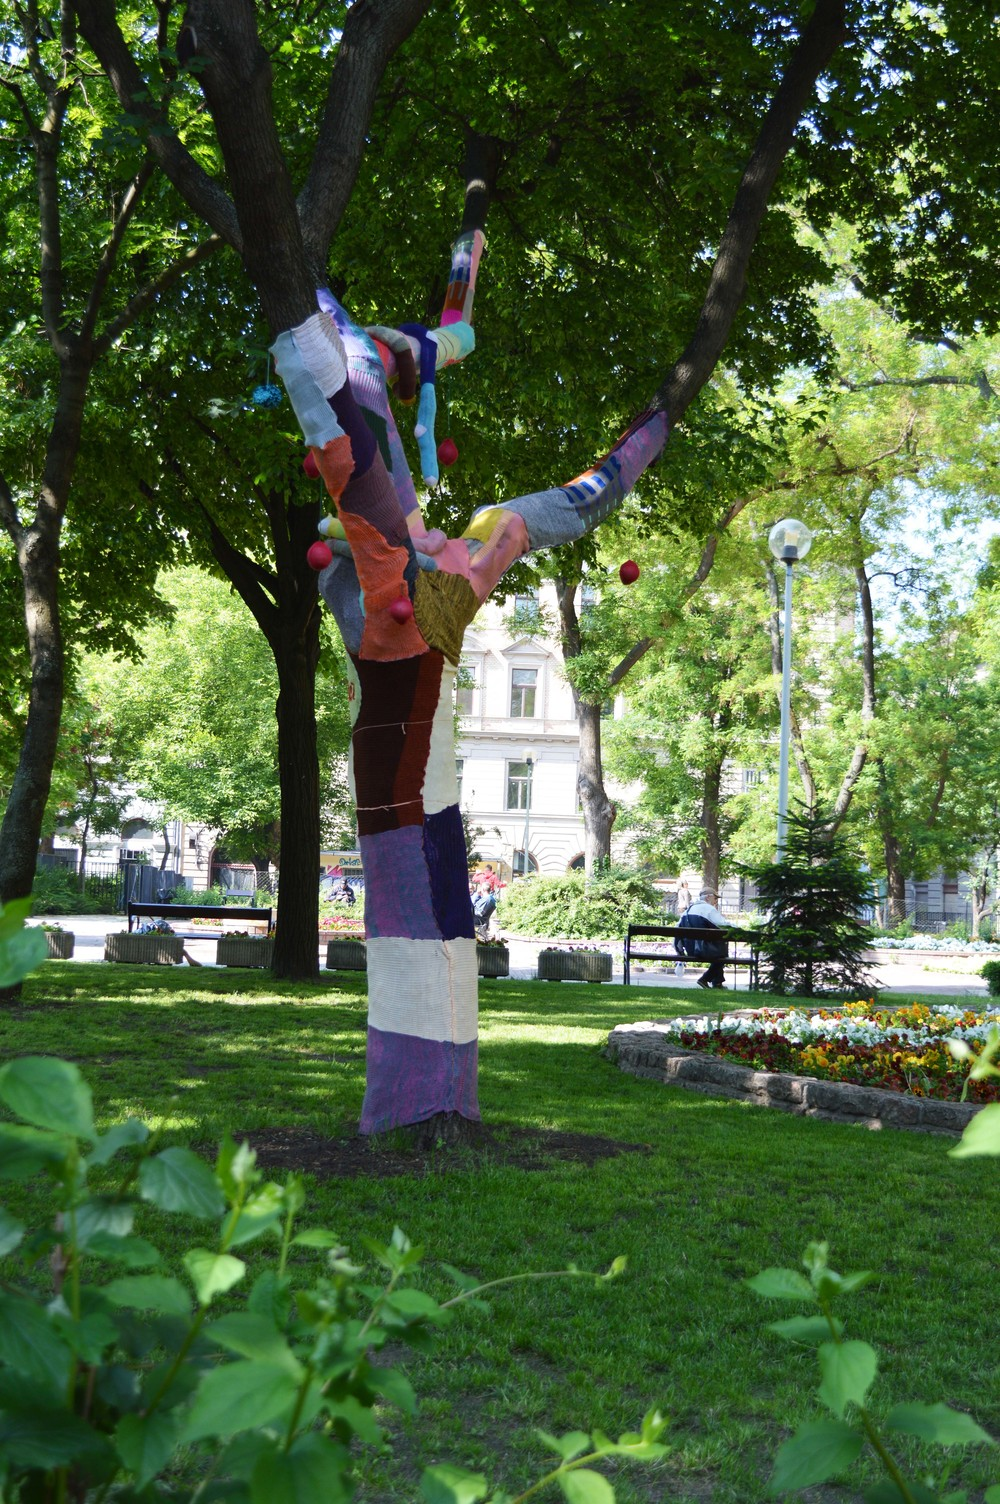 Yarnbombing in a park near our hotel